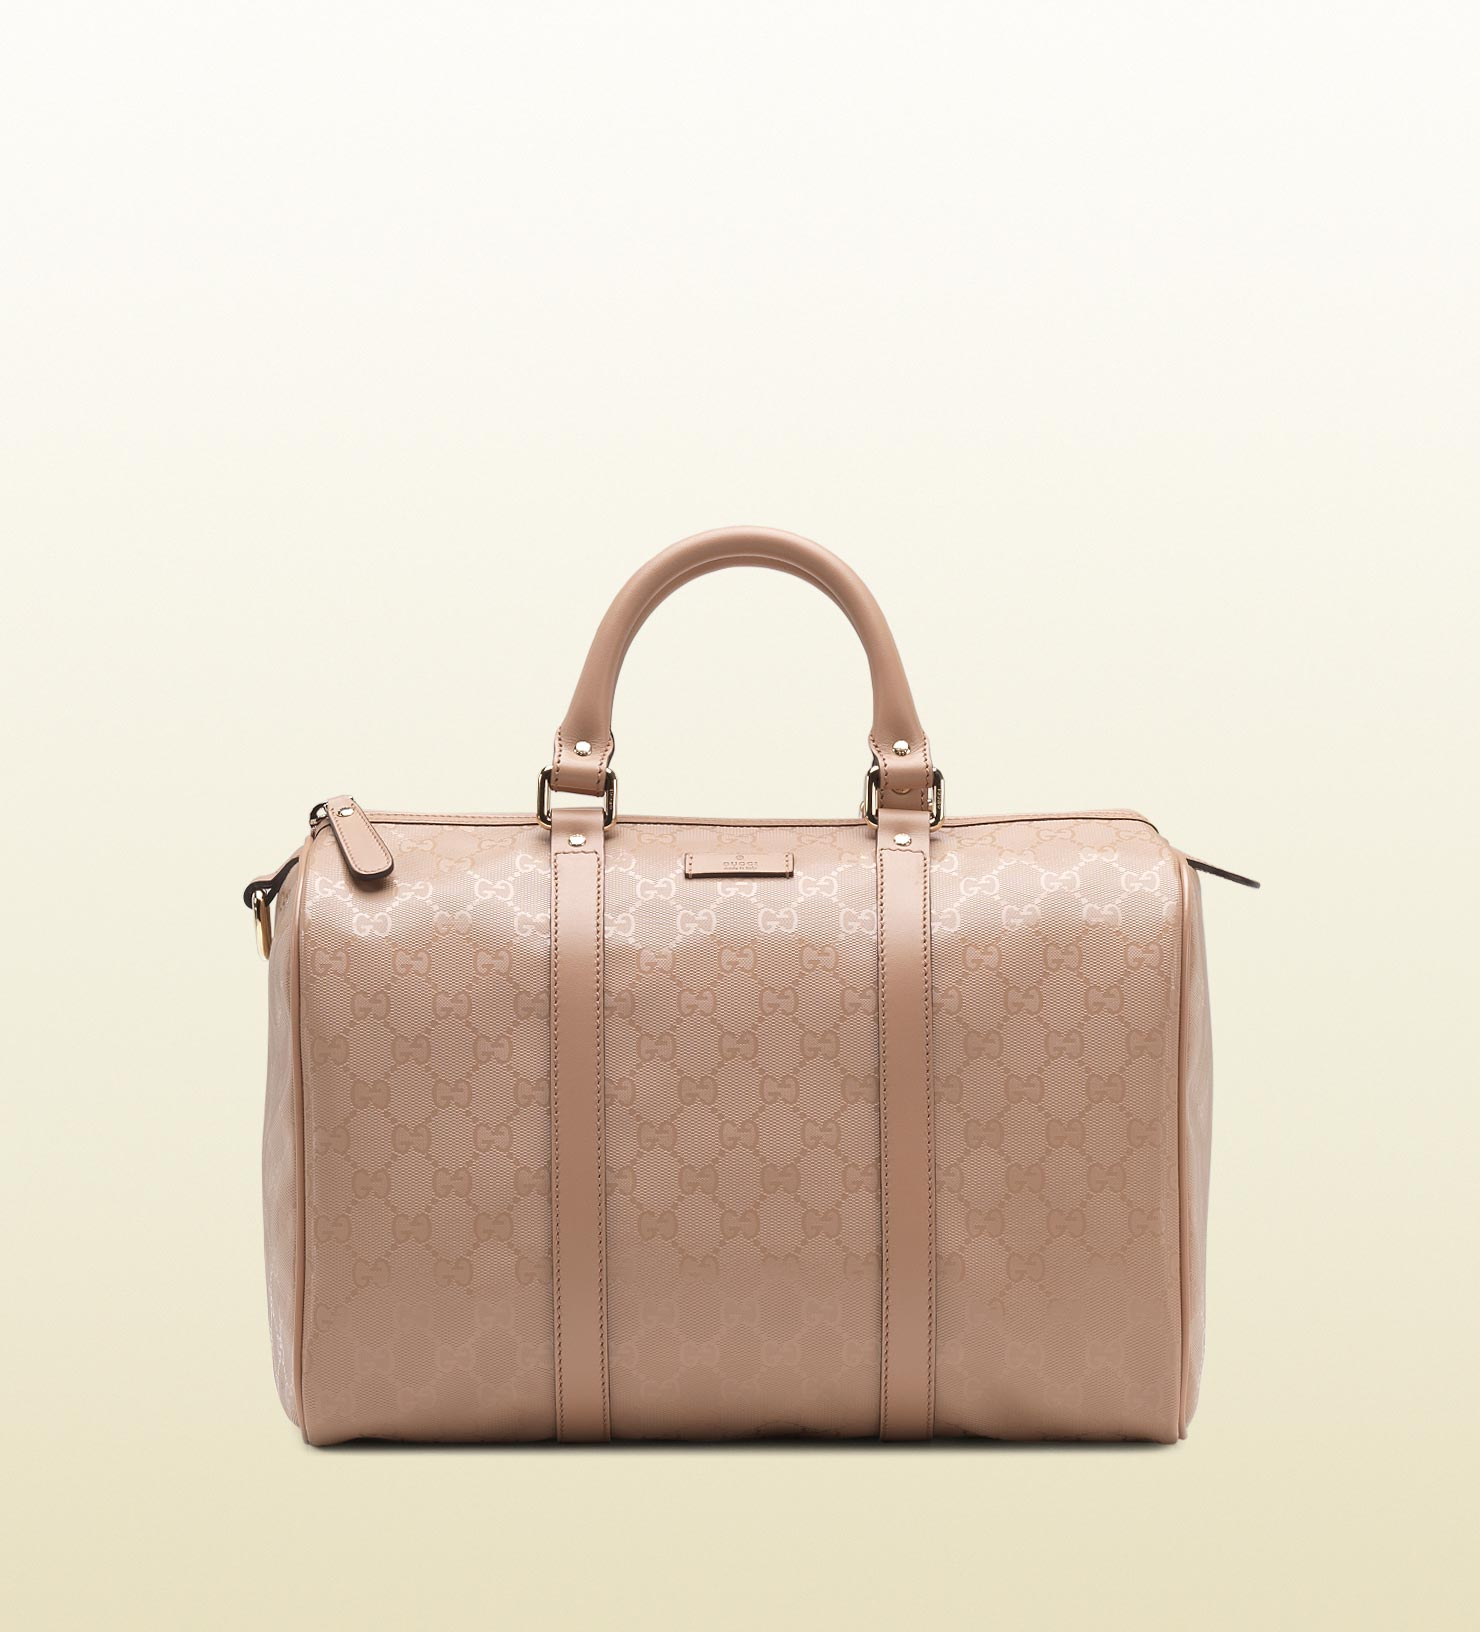 f5ee62e8ab31 Gucci Joy Leather Boston Bag in Pink - Lyst